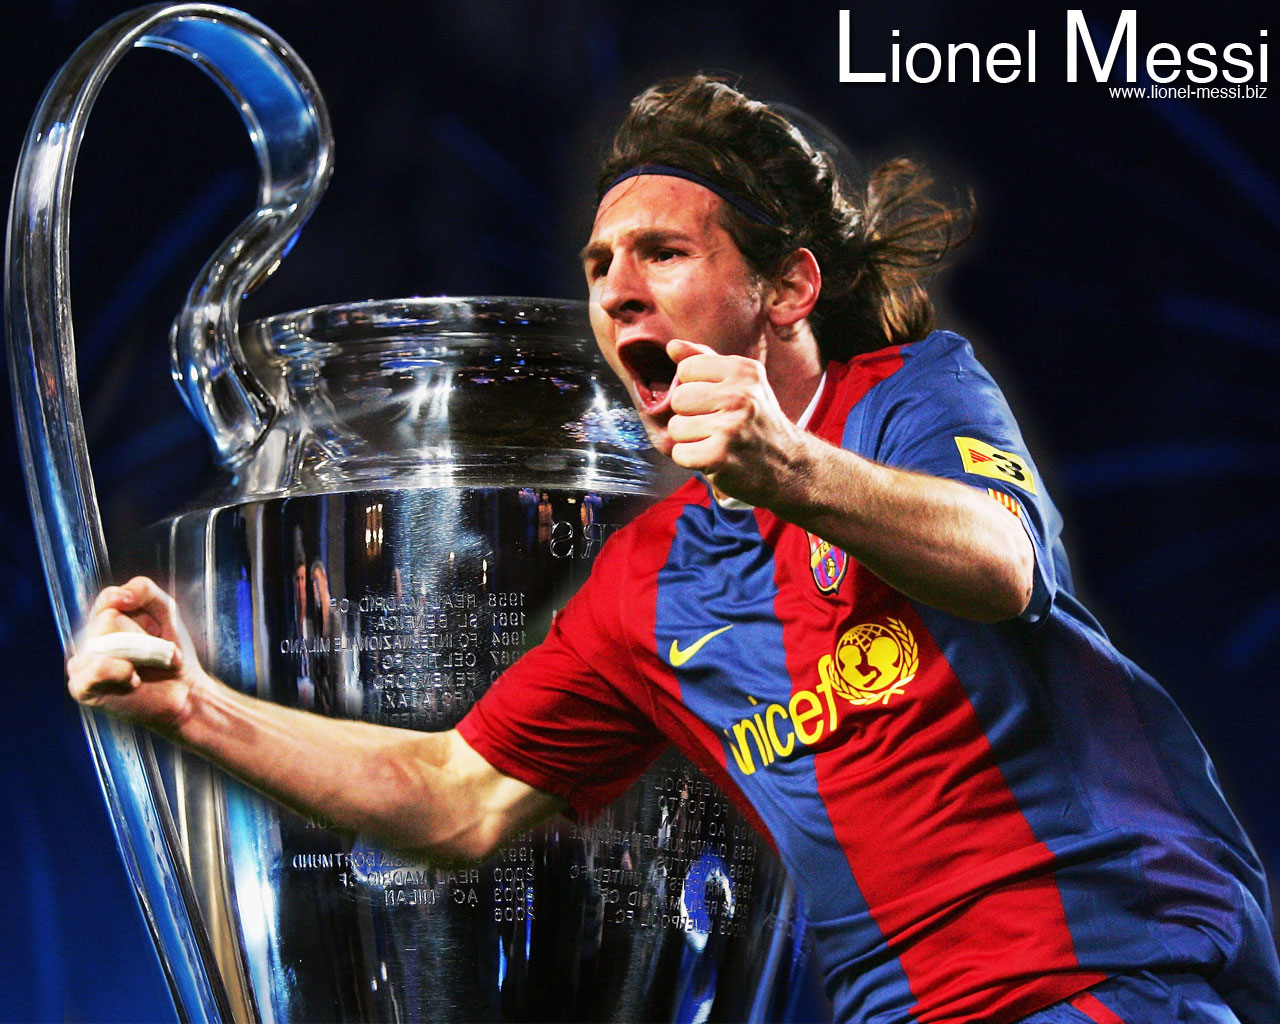 Lionel Messi Super 10 Lionel Messi Wallpaper picture wallpaper image